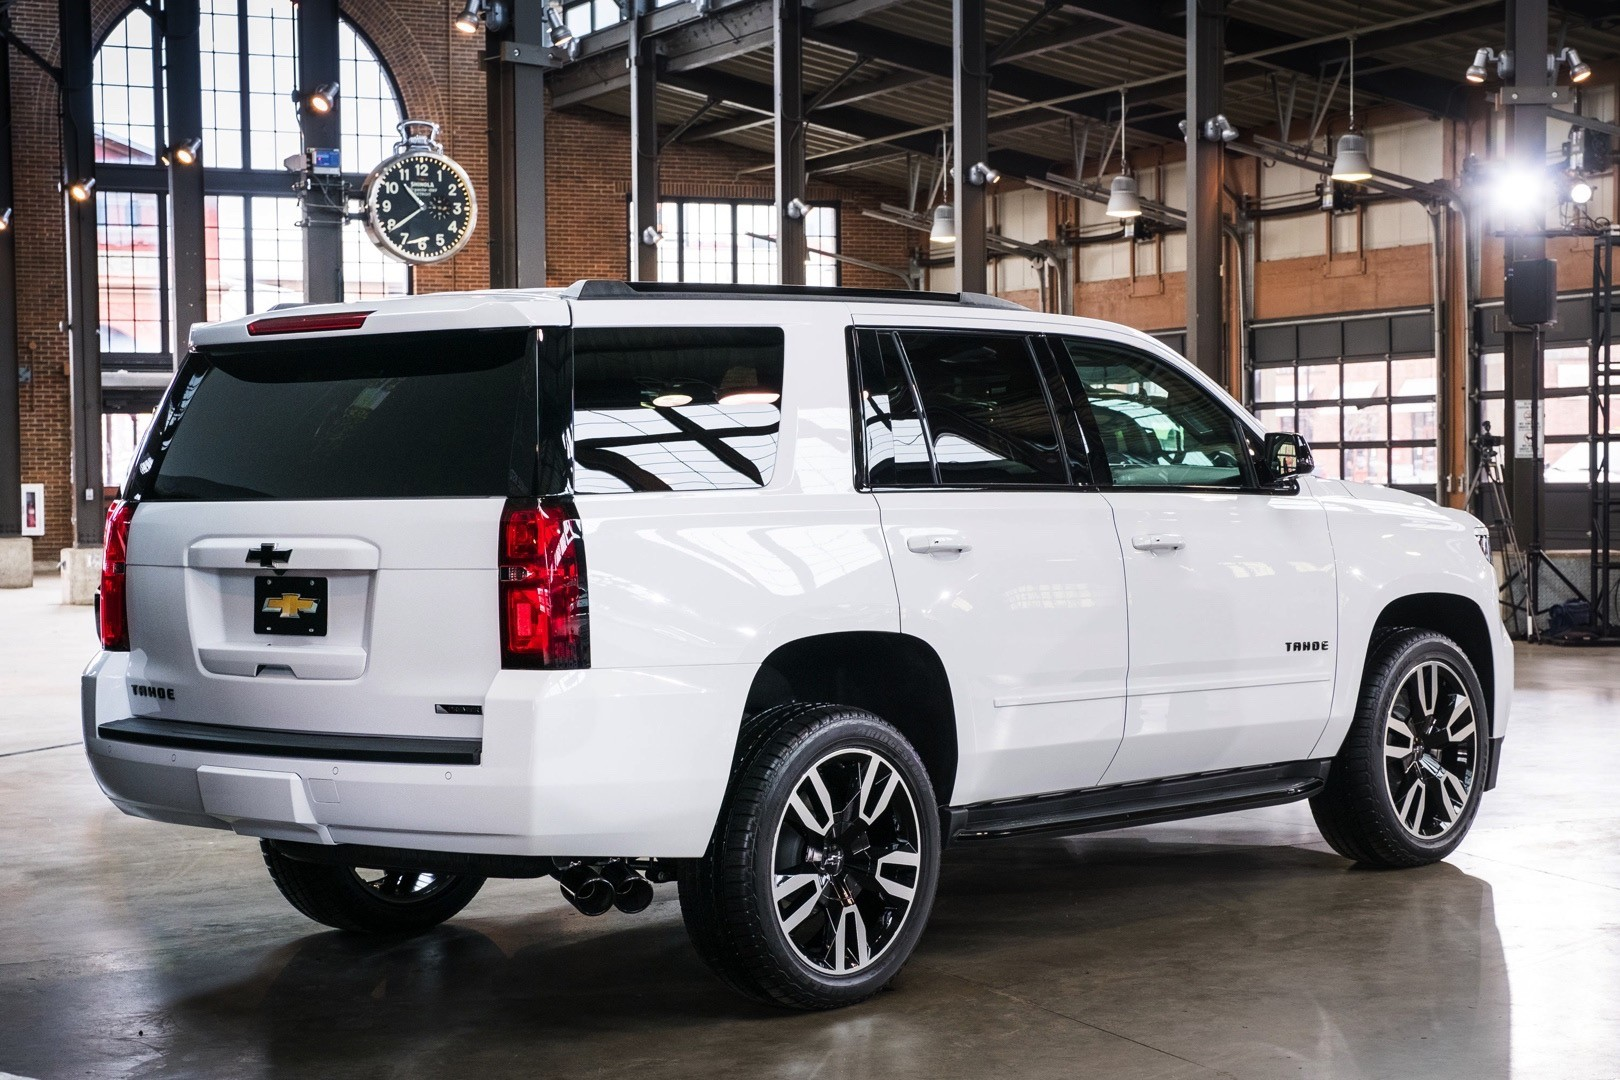 Tahoe Rst Is A Full Size Chevrolet Suv Packing 420 Hp